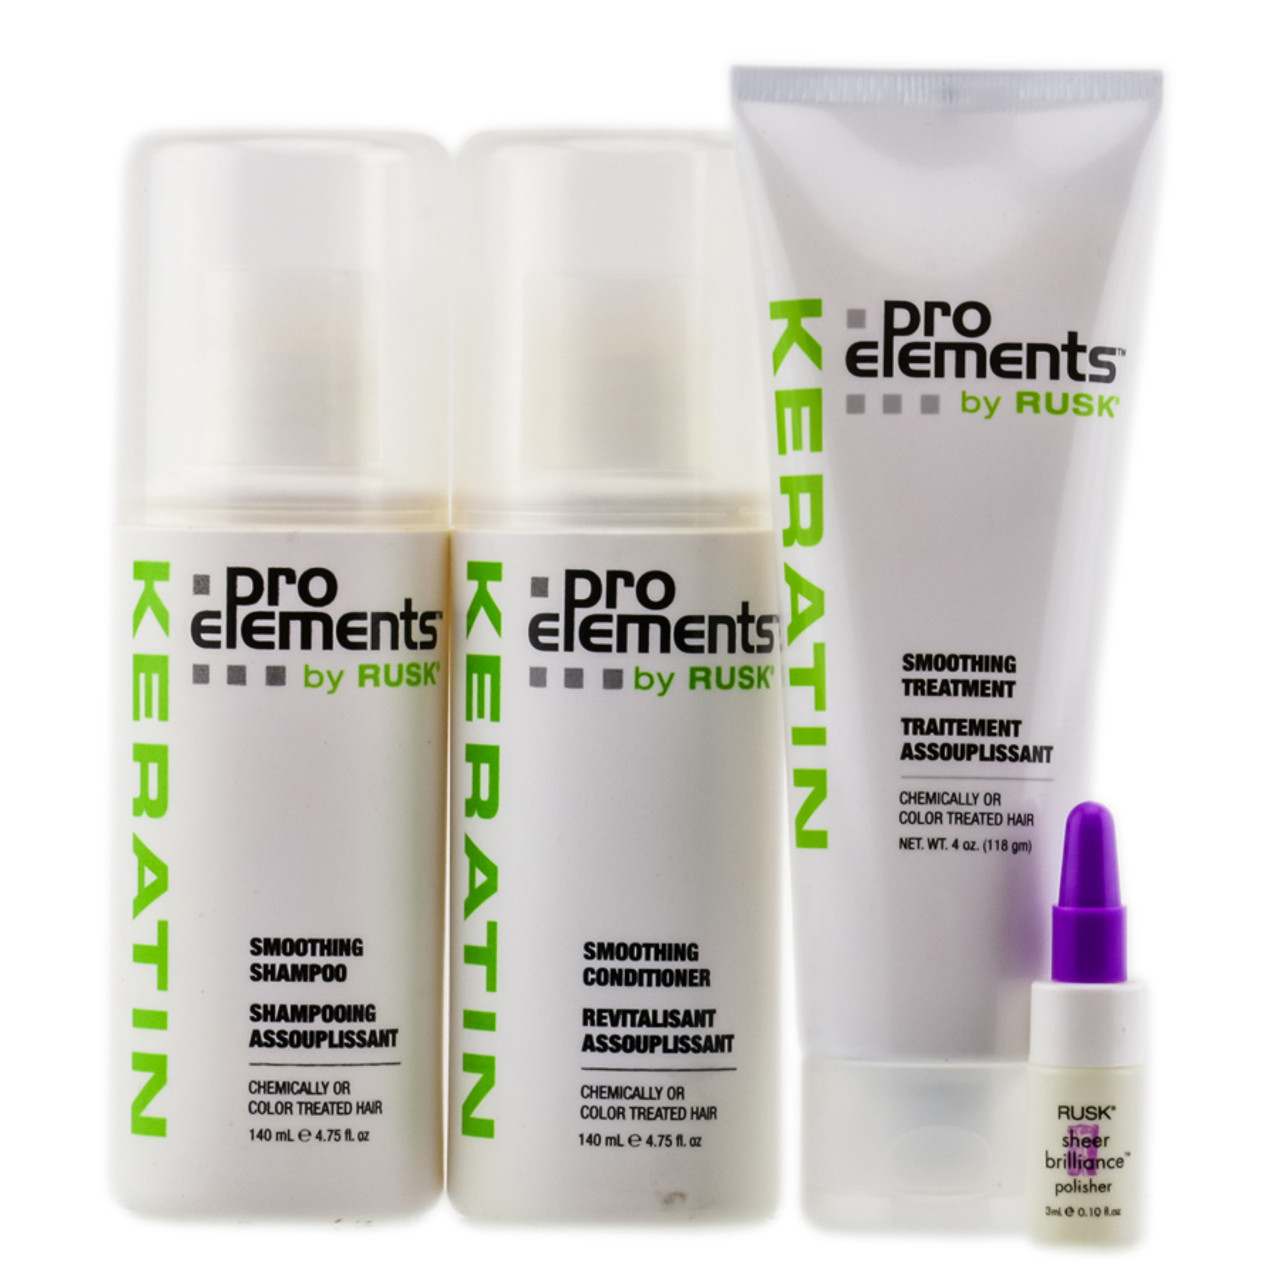 Rusk Keratin Pro Elements Smoothing Treatment Kit Sleekshop